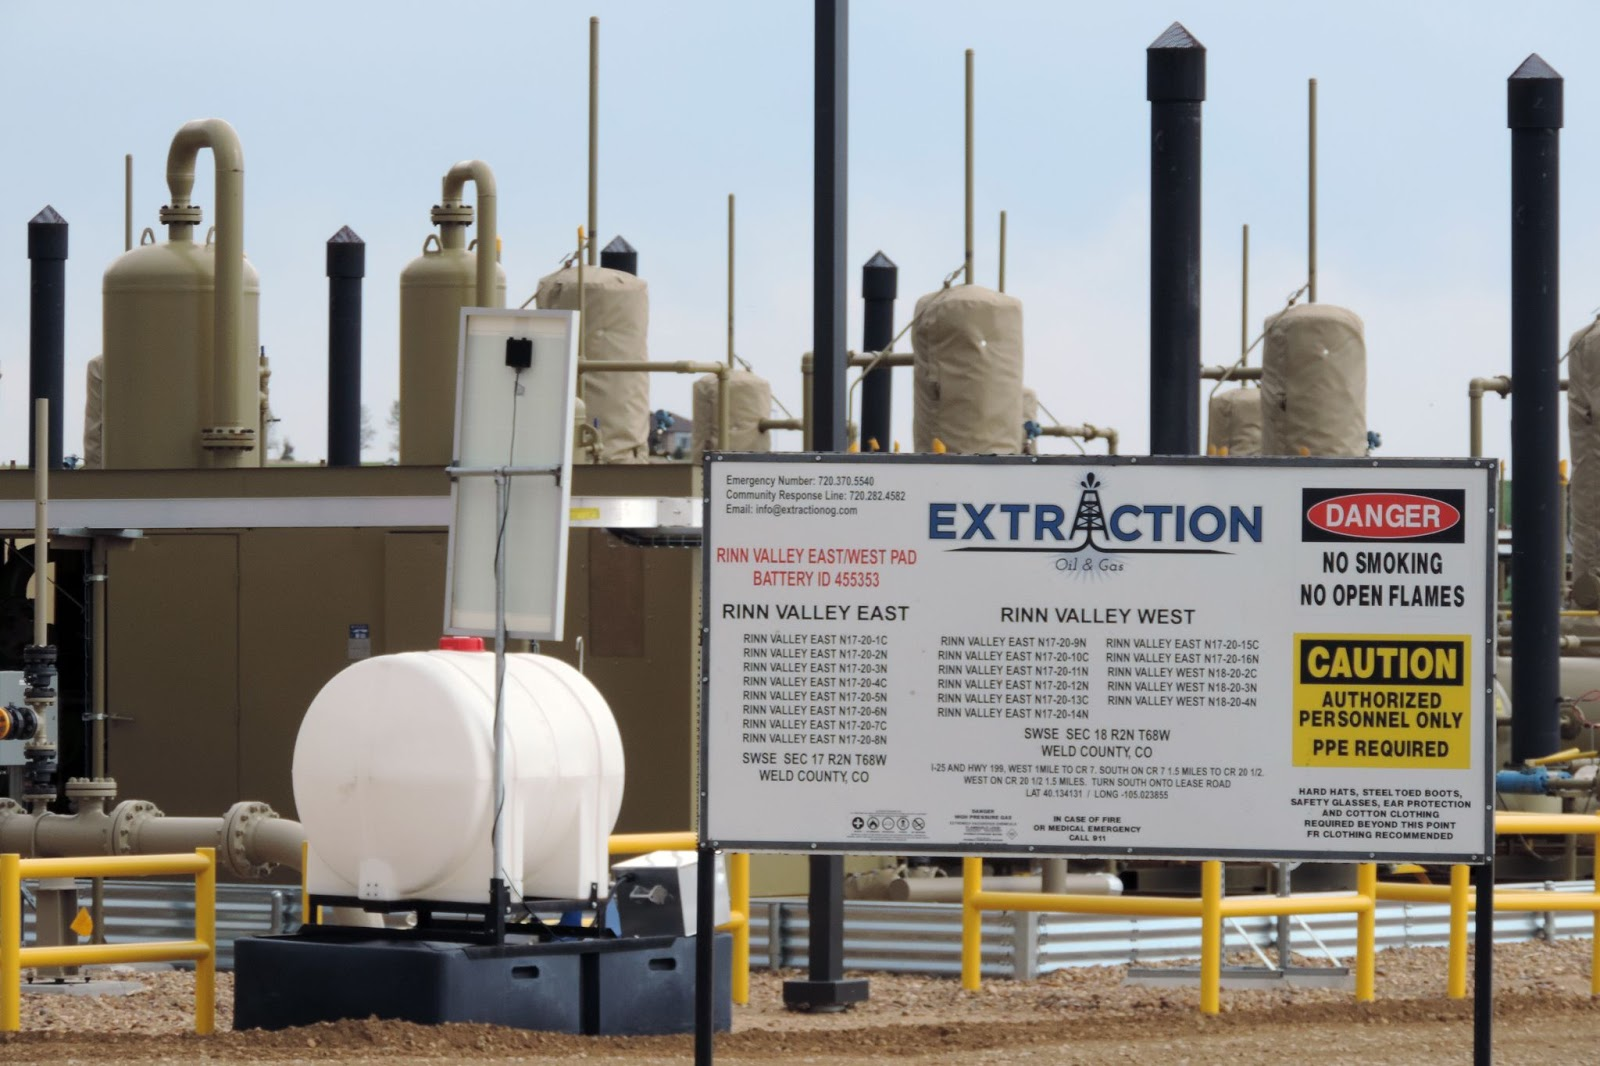 Extraction Oil and Gas, Weld County